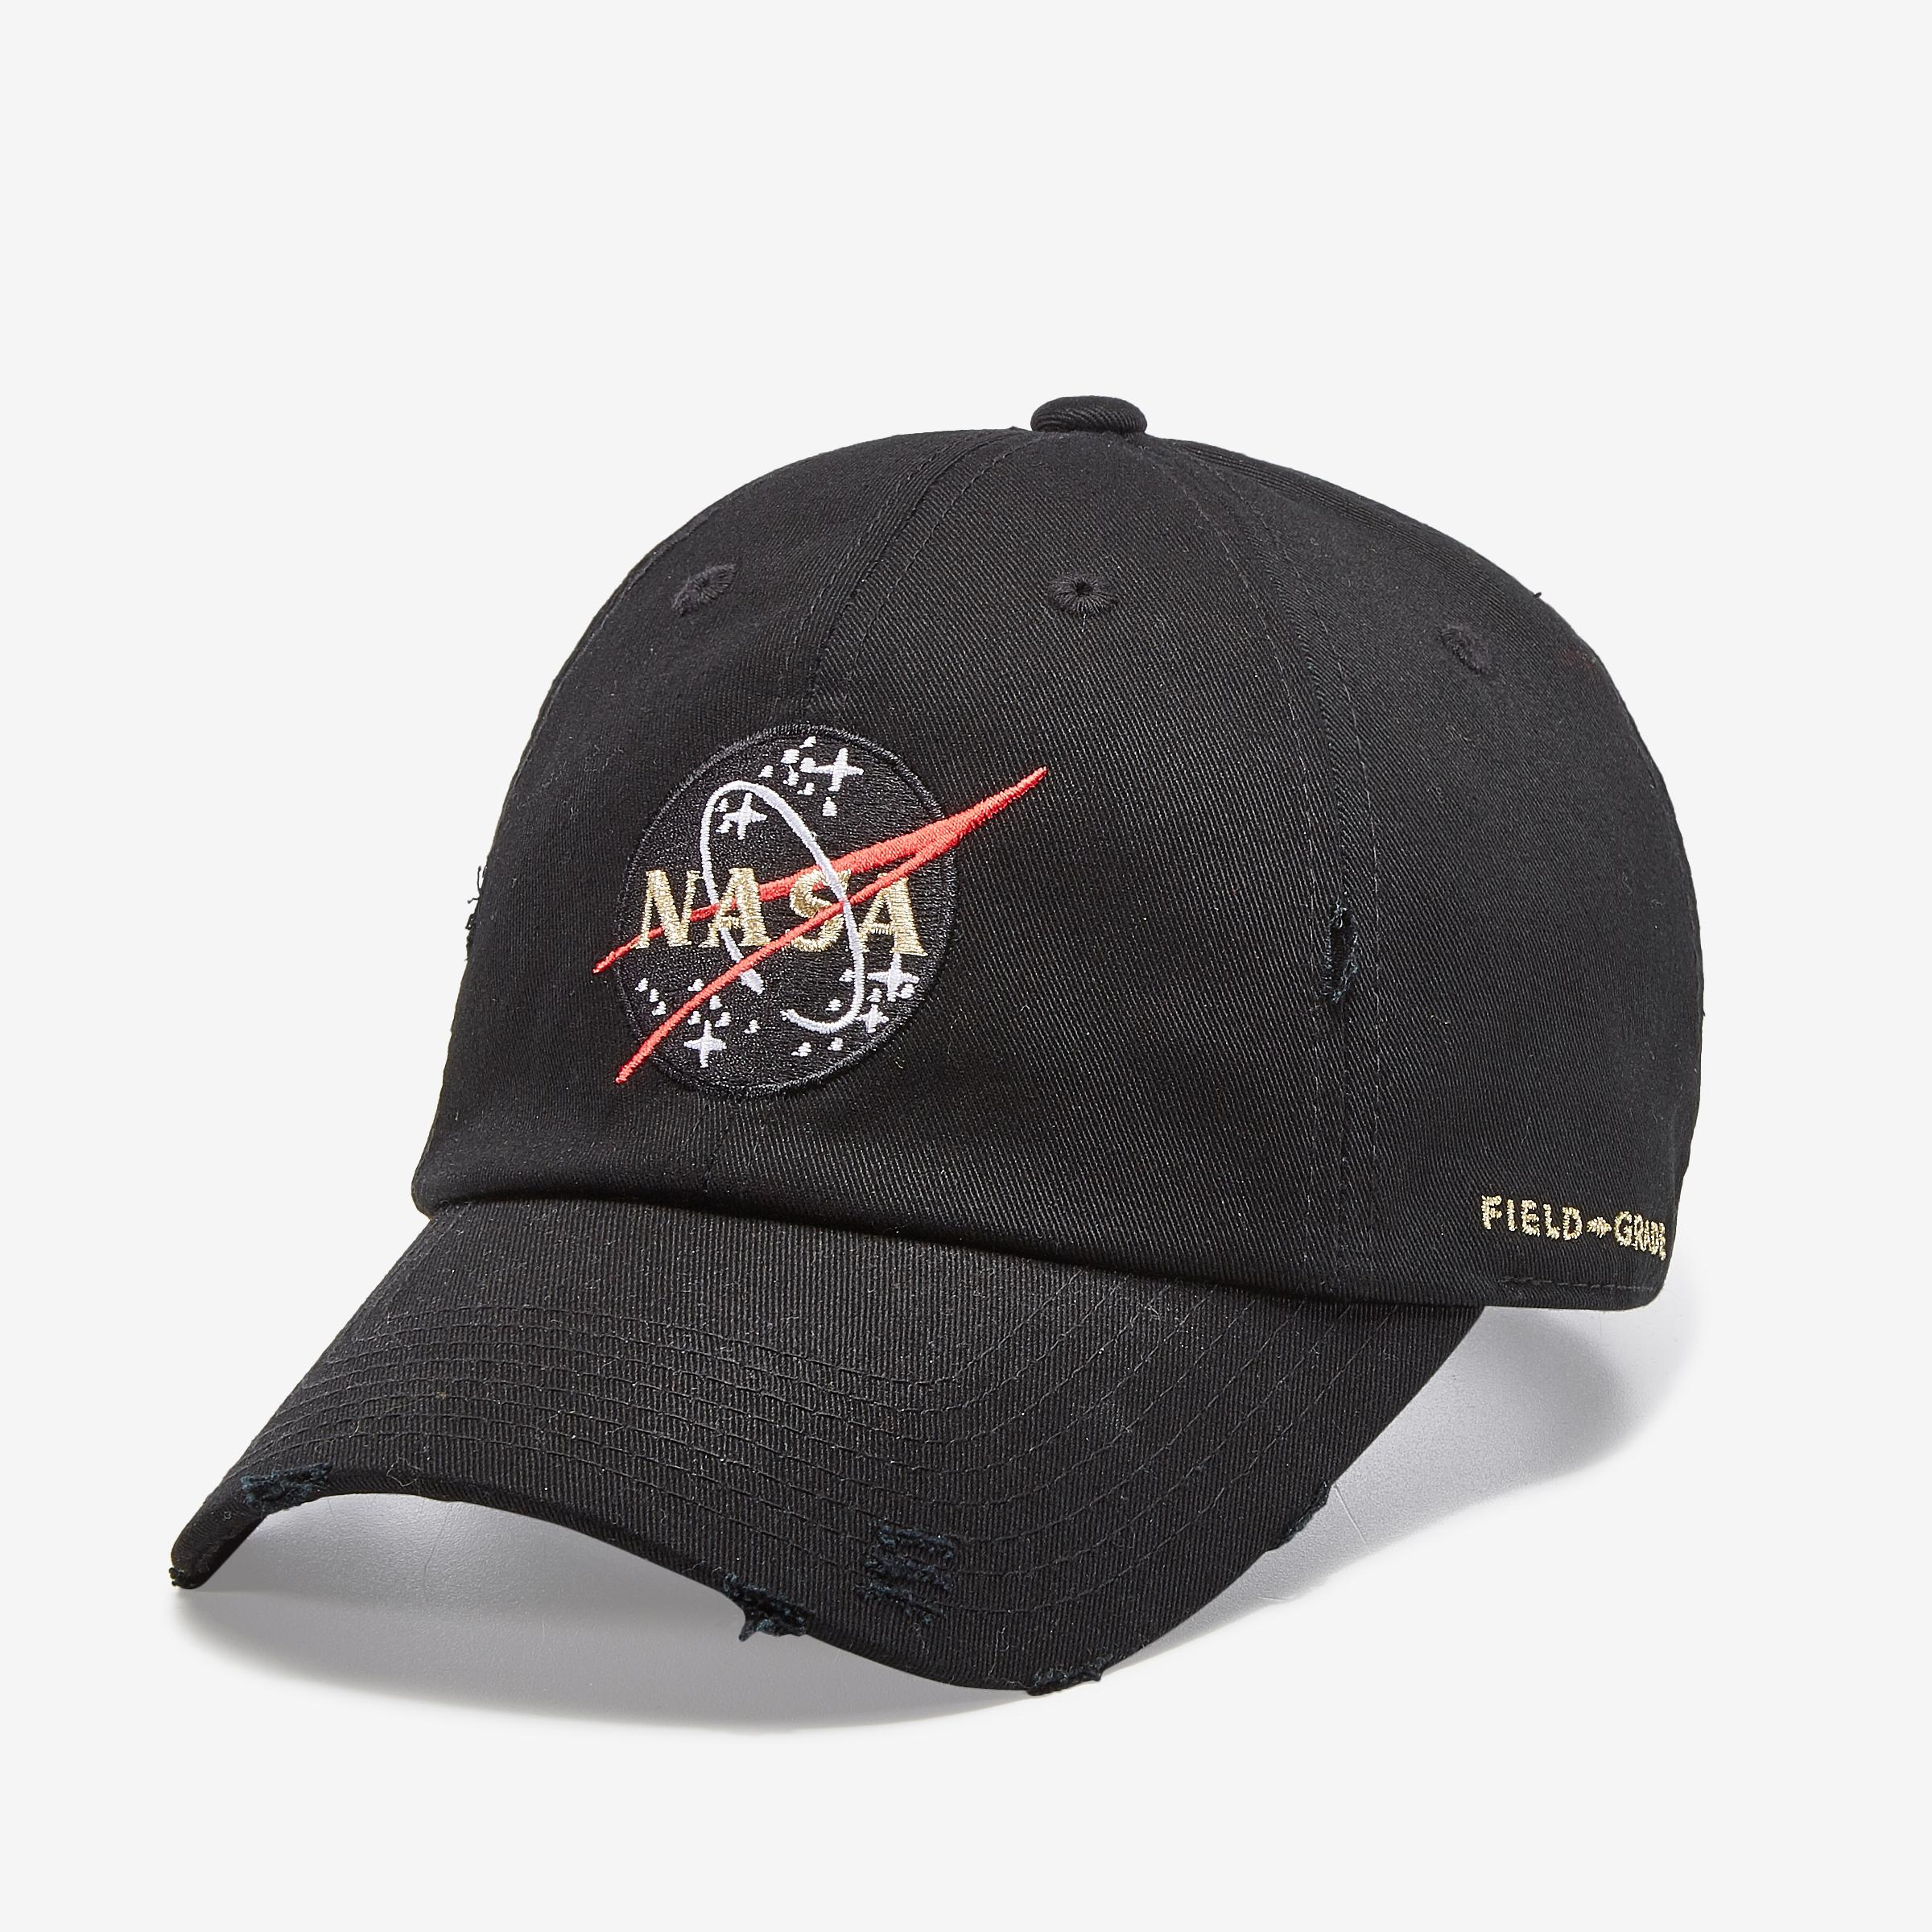 Nasa 50th Anniversary Distressed Hat